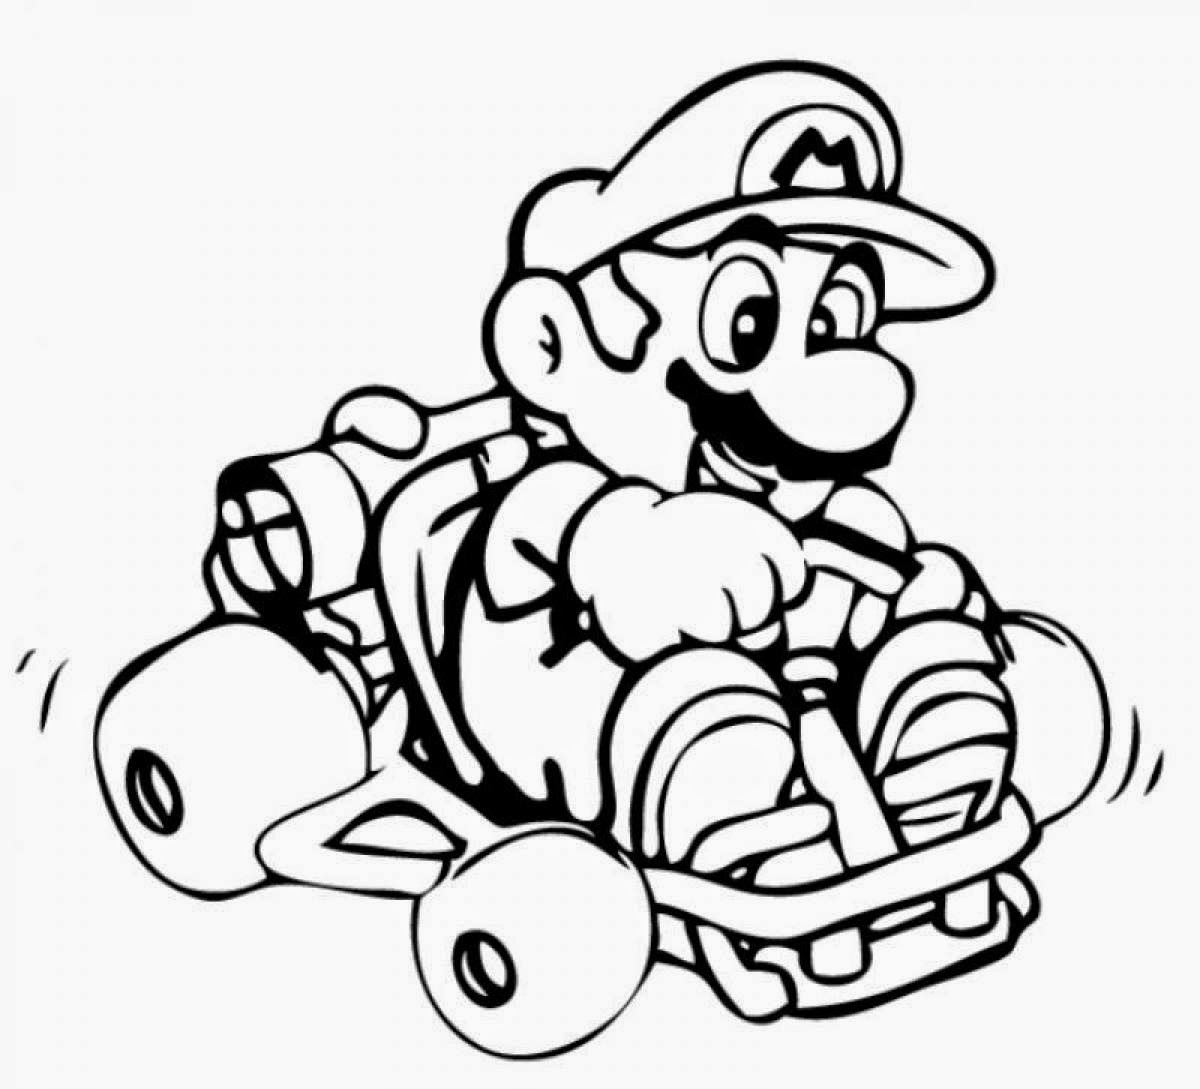 mario color pages mario coloring pages themes best apps for kids mario color pages